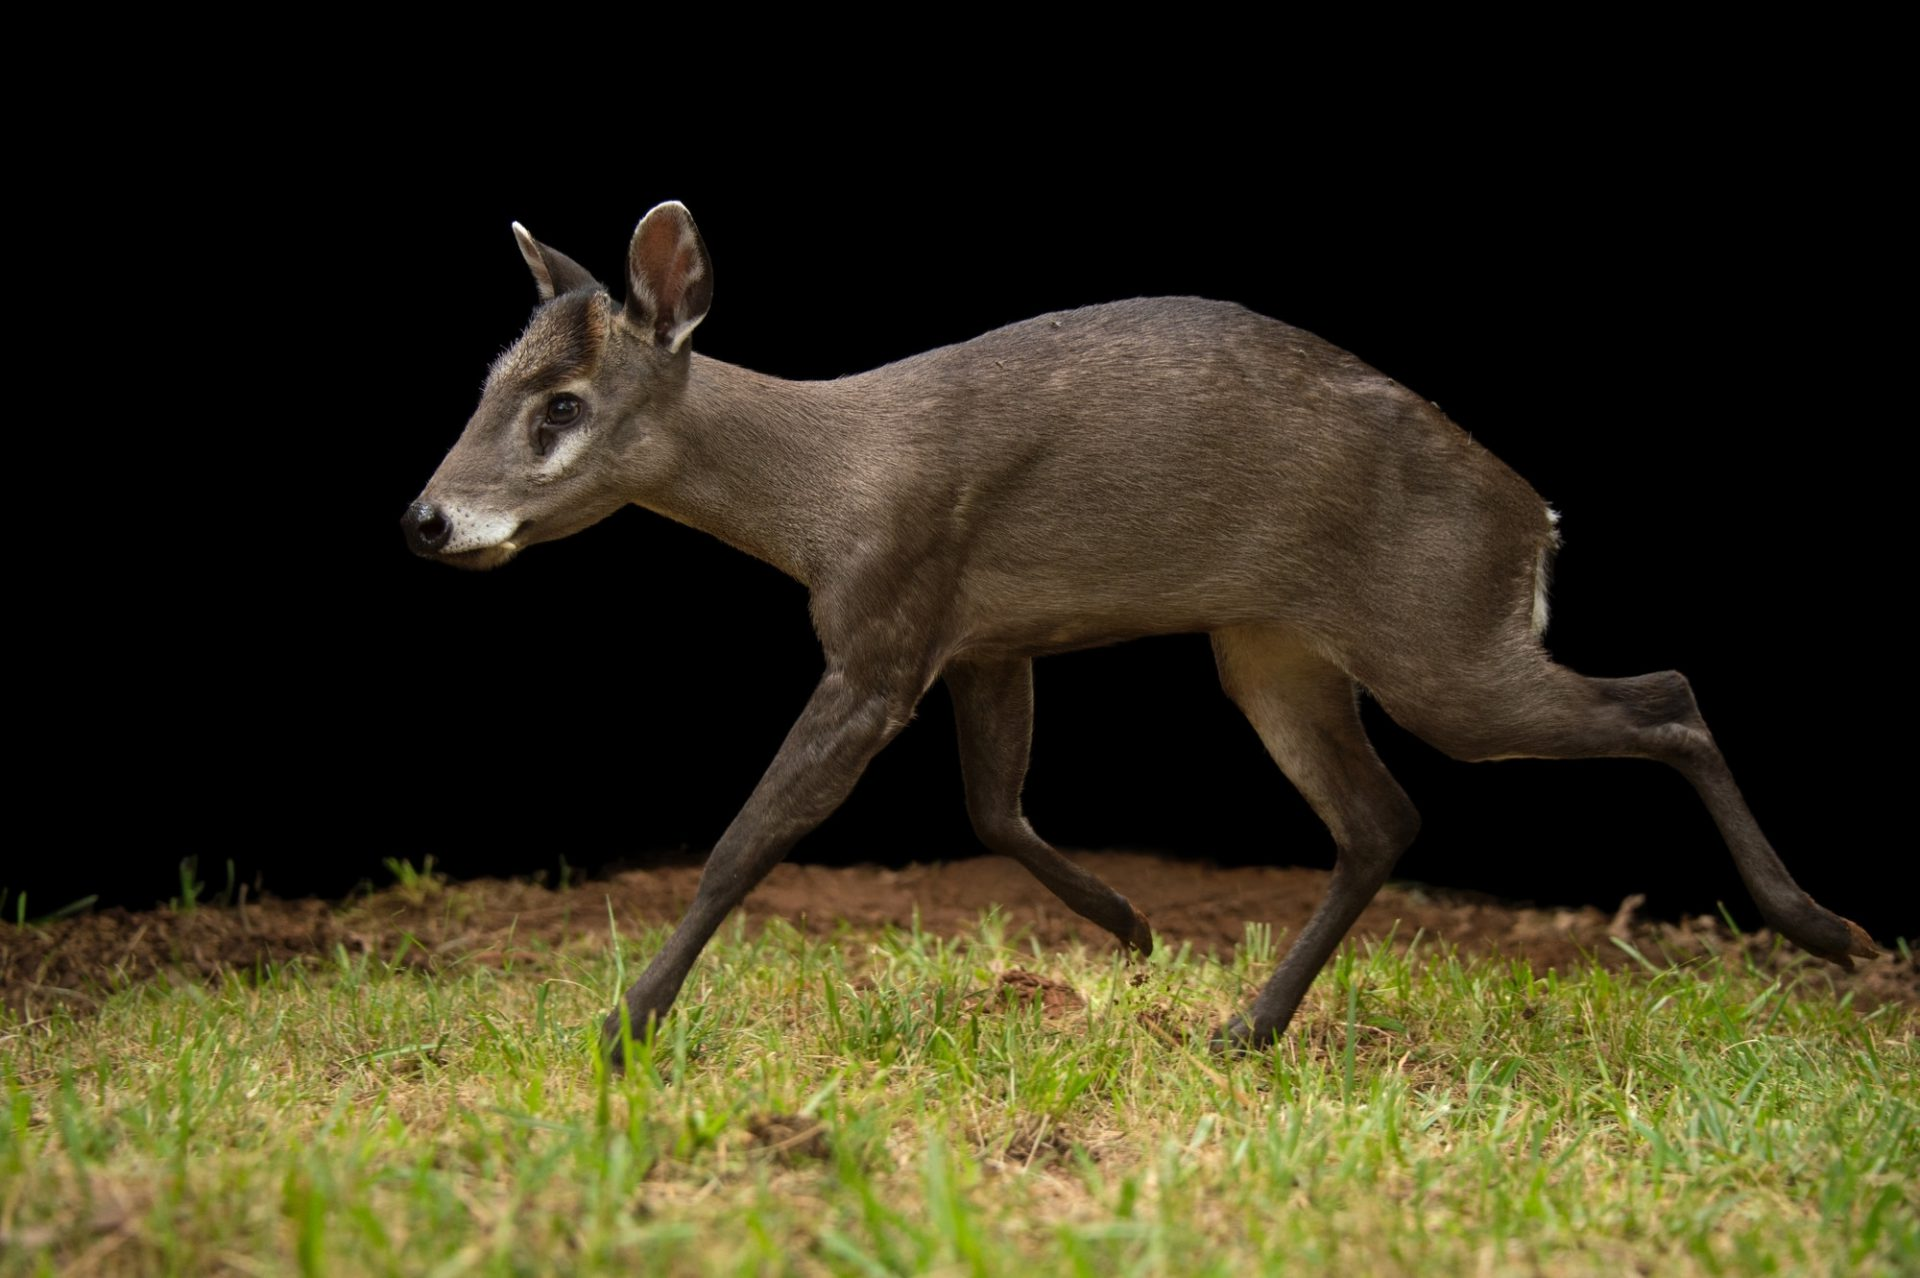 Picture of a western tufted deer (Elaphodus cephalophus cephalophus) at the Oklahoma City Zoo.